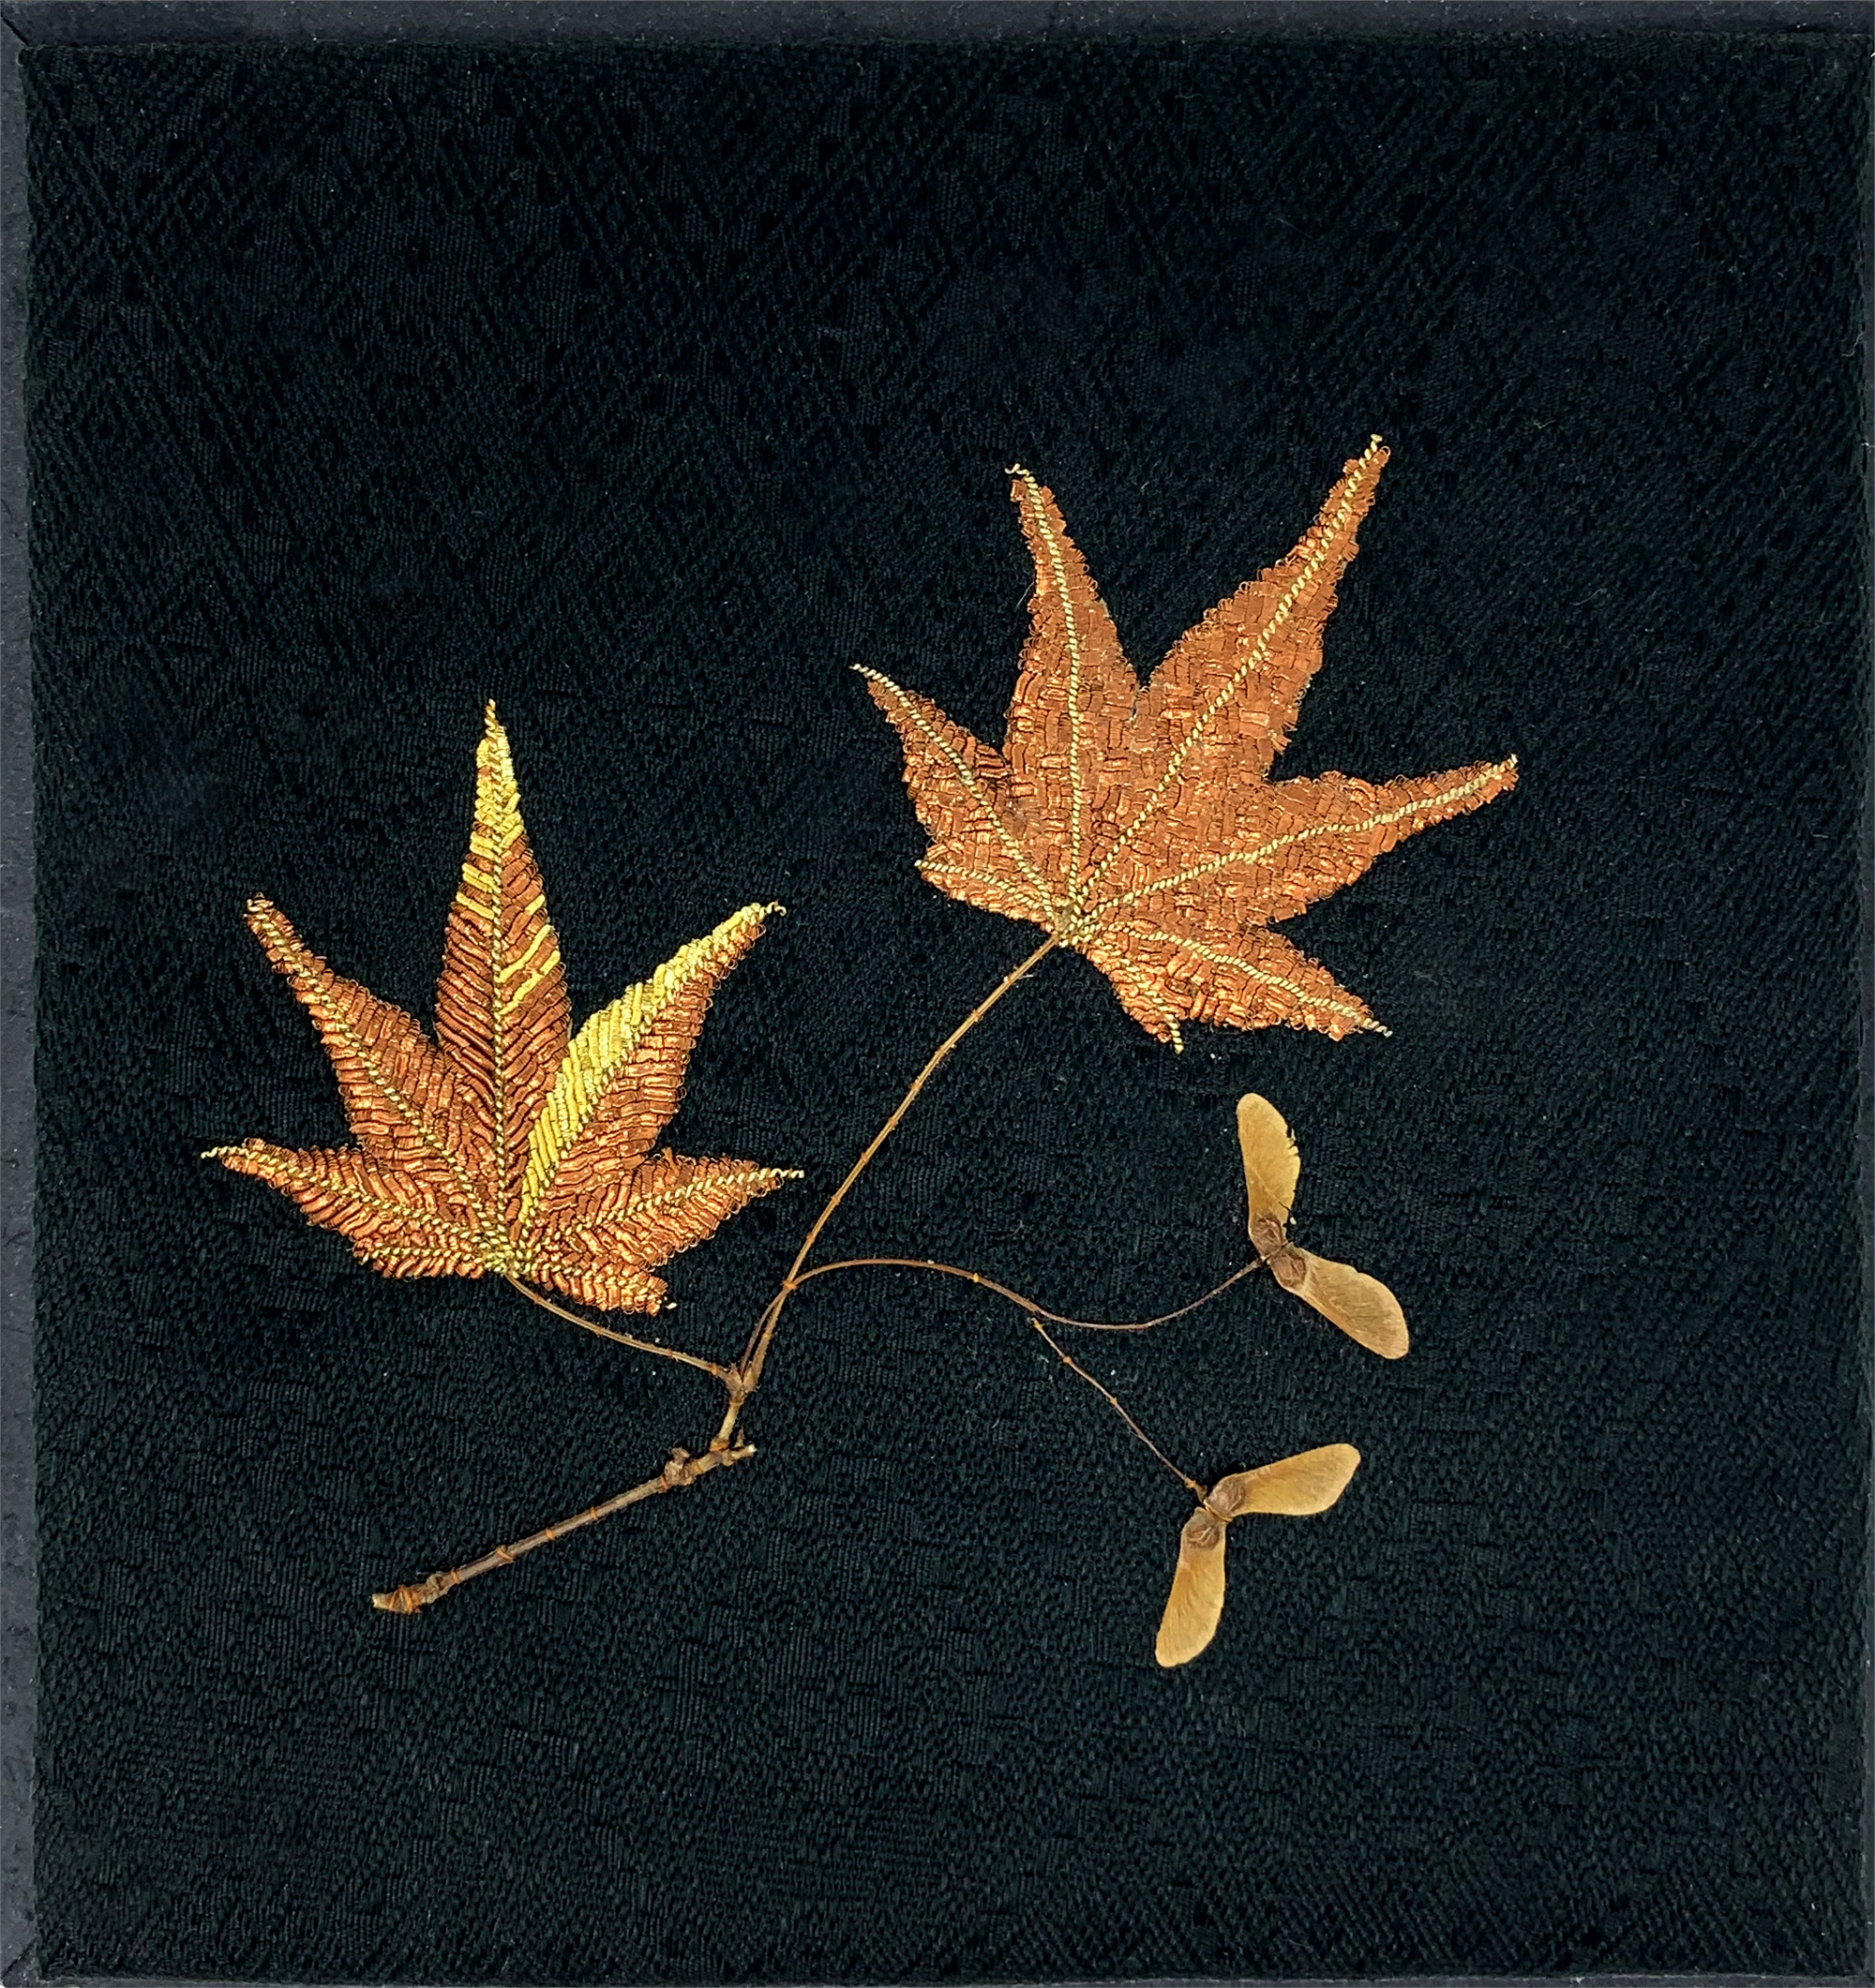 Kyoto, 2014: Maple Leaves and Seedlings by Tiao Nithakhong Somsanith